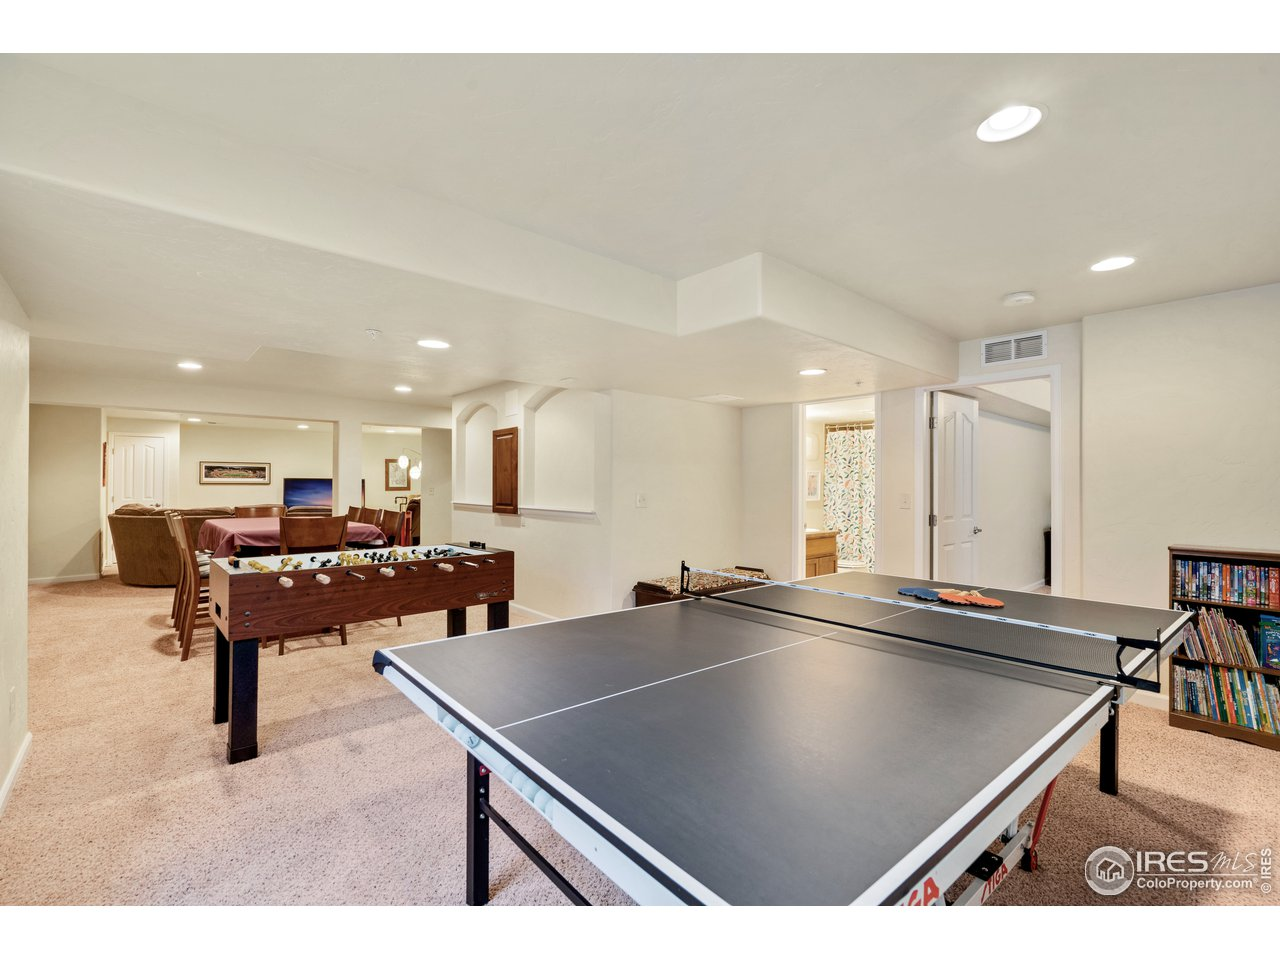 even room for ping pong and foosball!